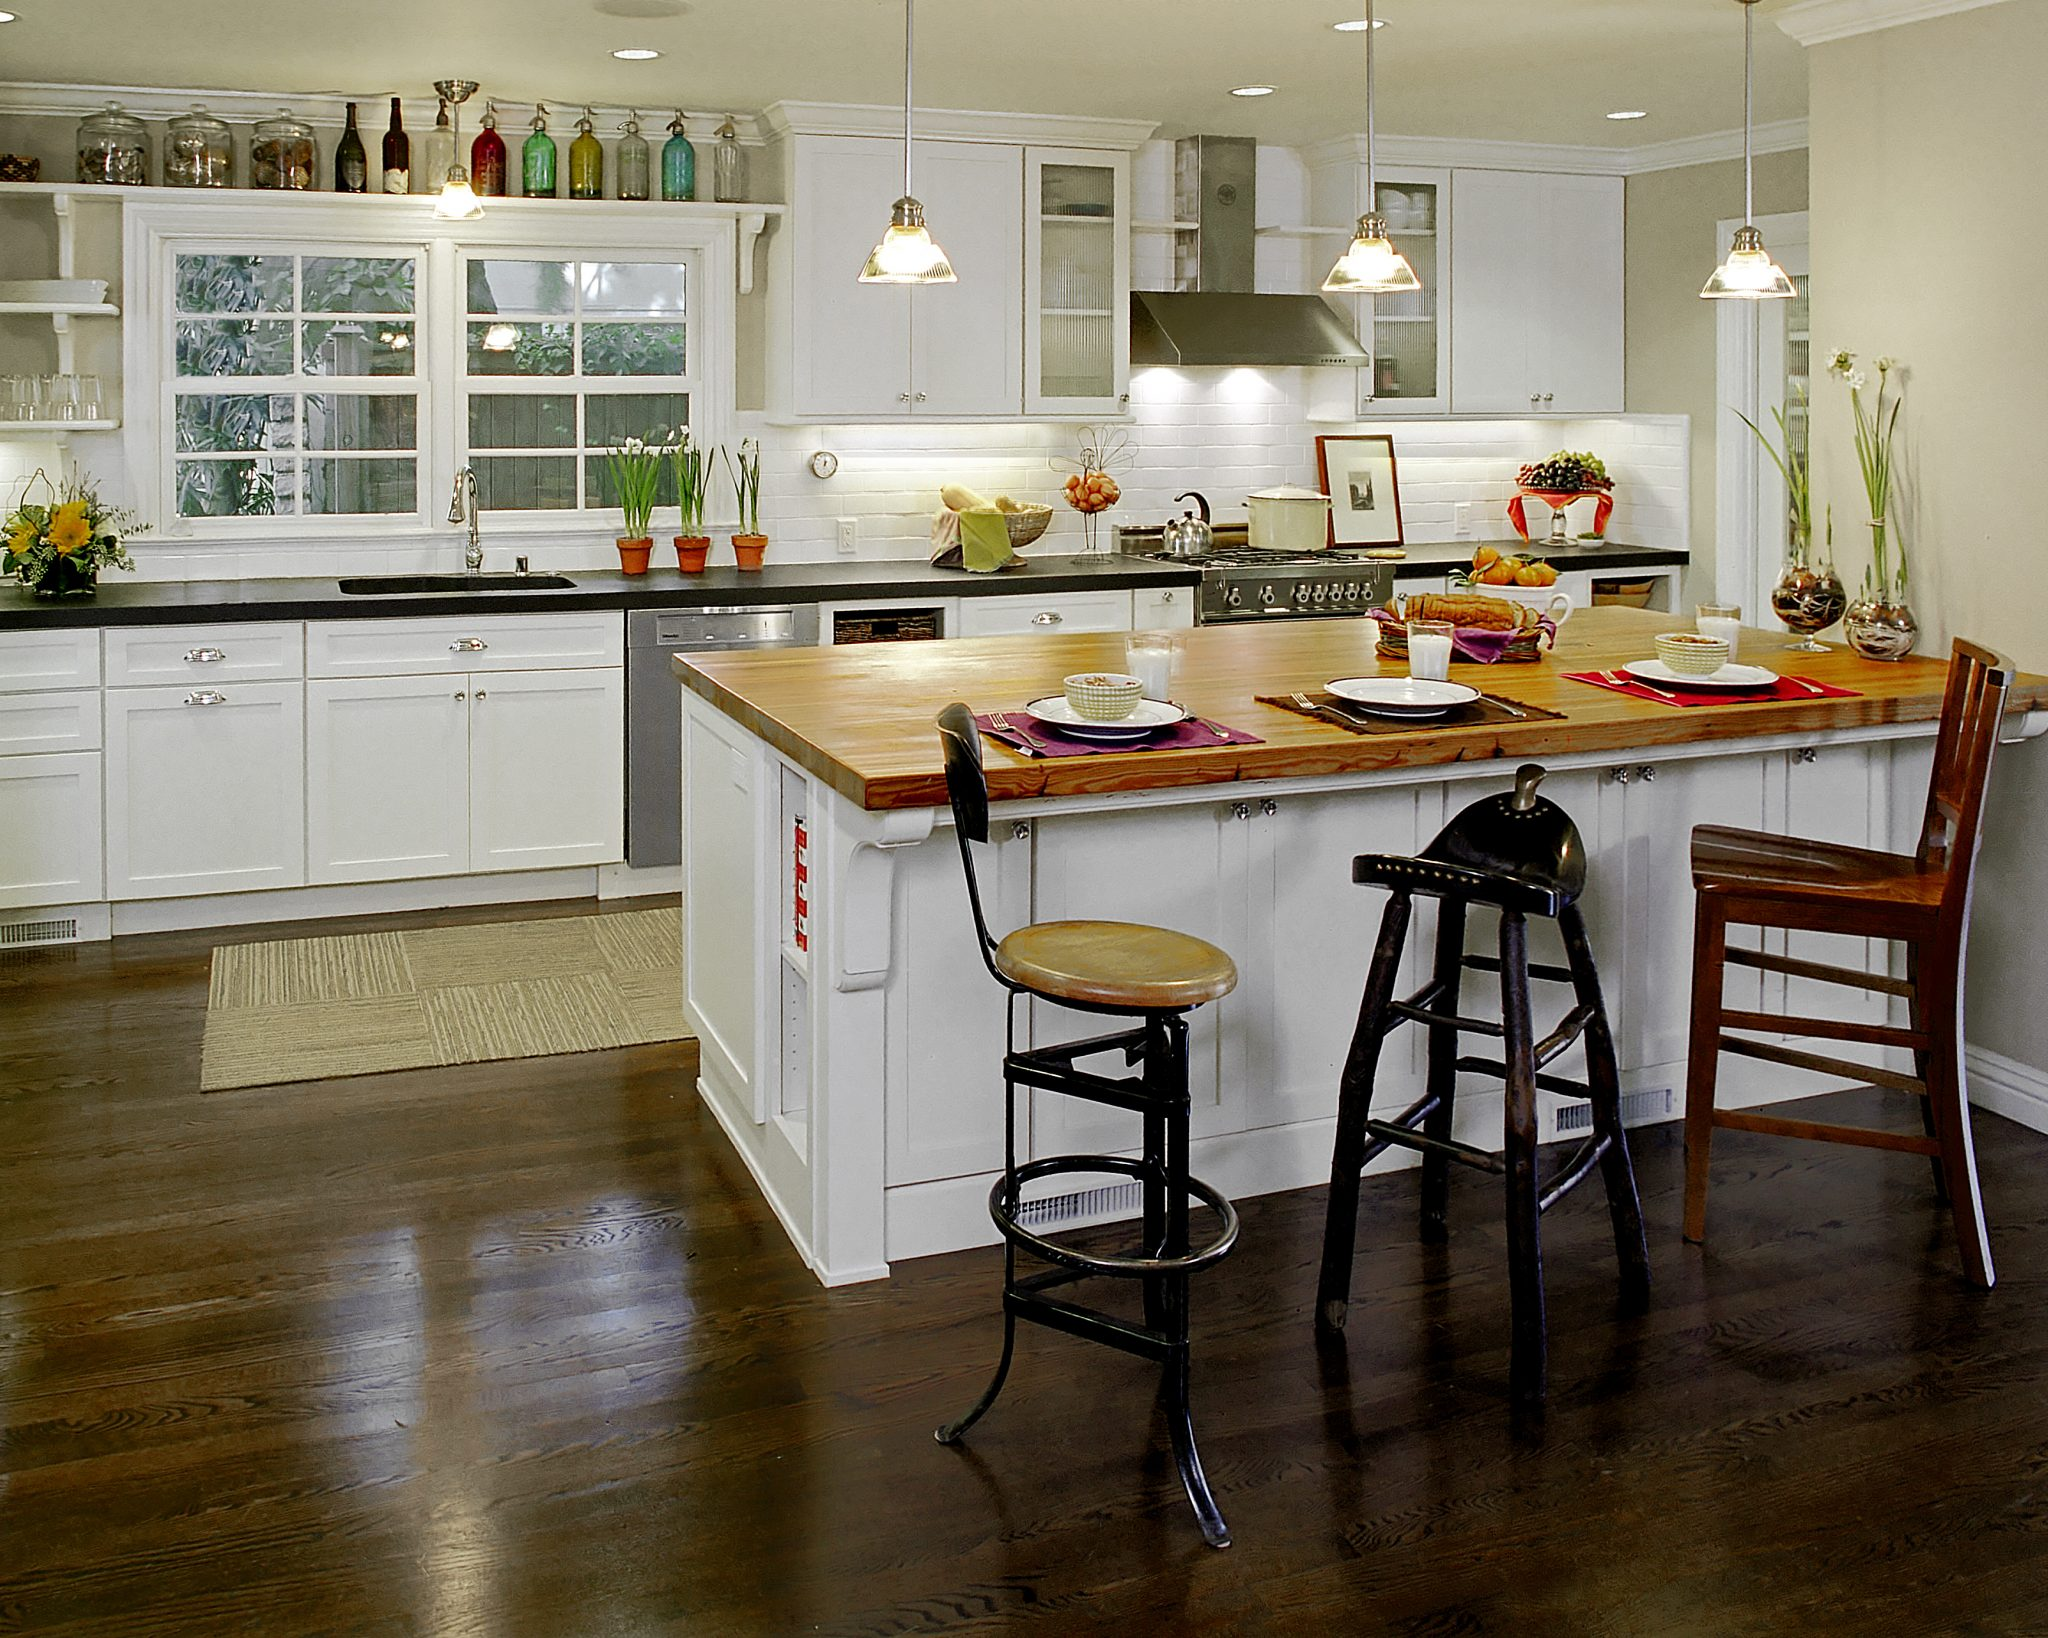 Tips to Get Your Kitchen Back to School Ready